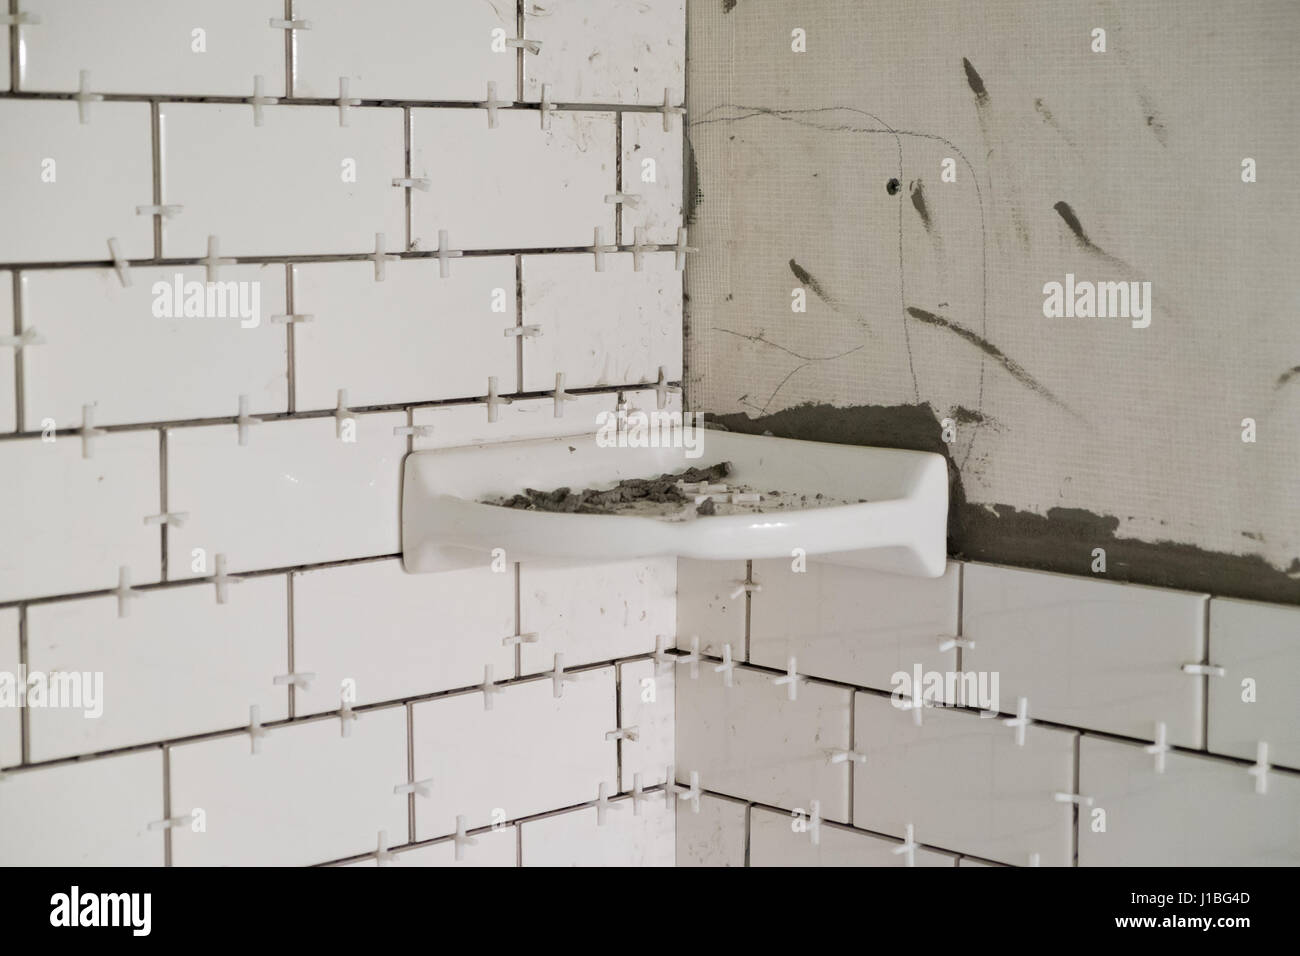 stock photo tub surround for a tall shower with white subways tiles set vertically on cement backer board during a major home renovation